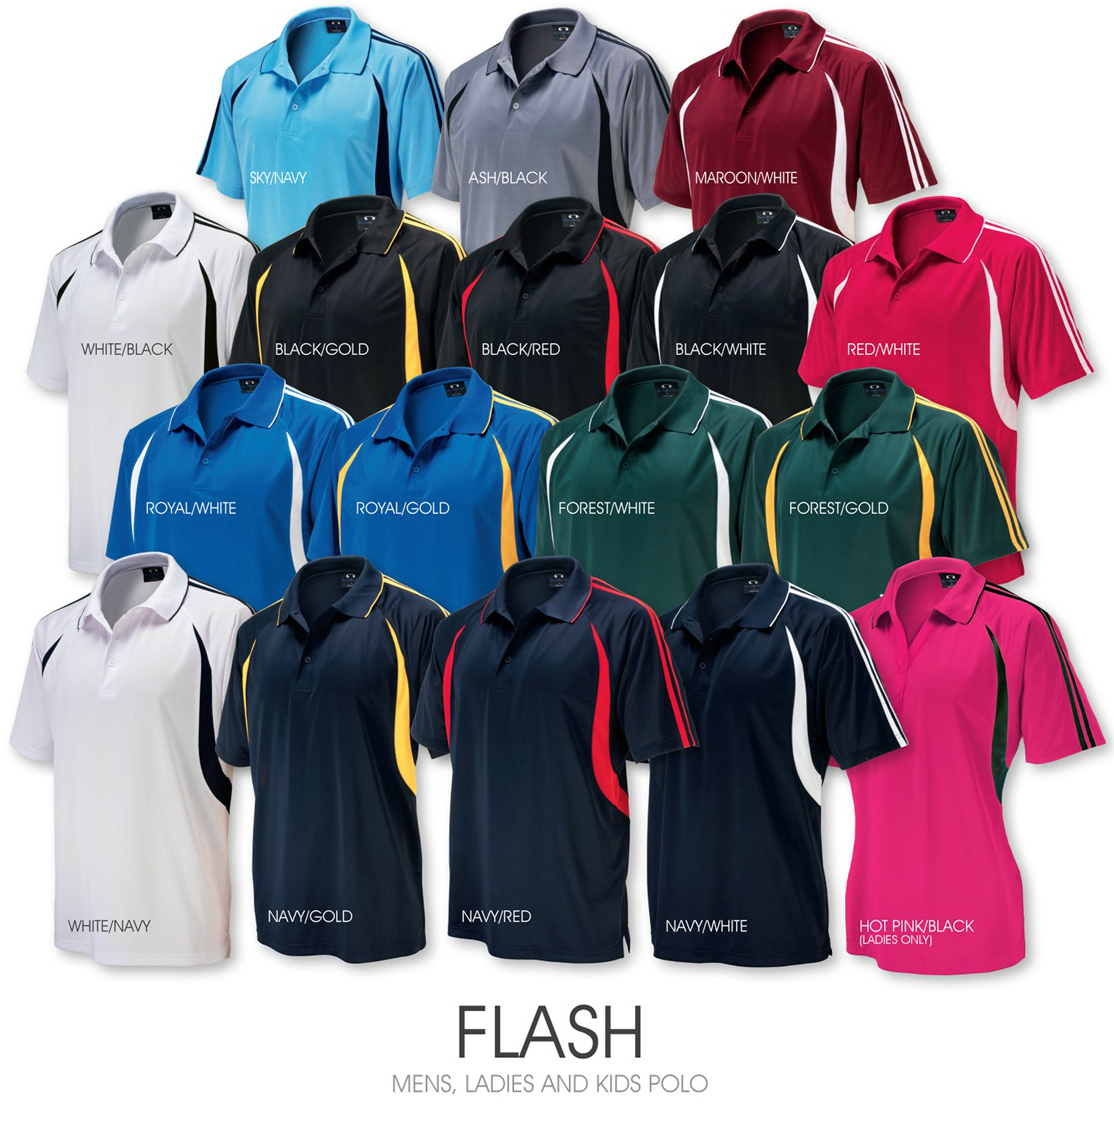 Flash men's ladies and kids polo.jpg